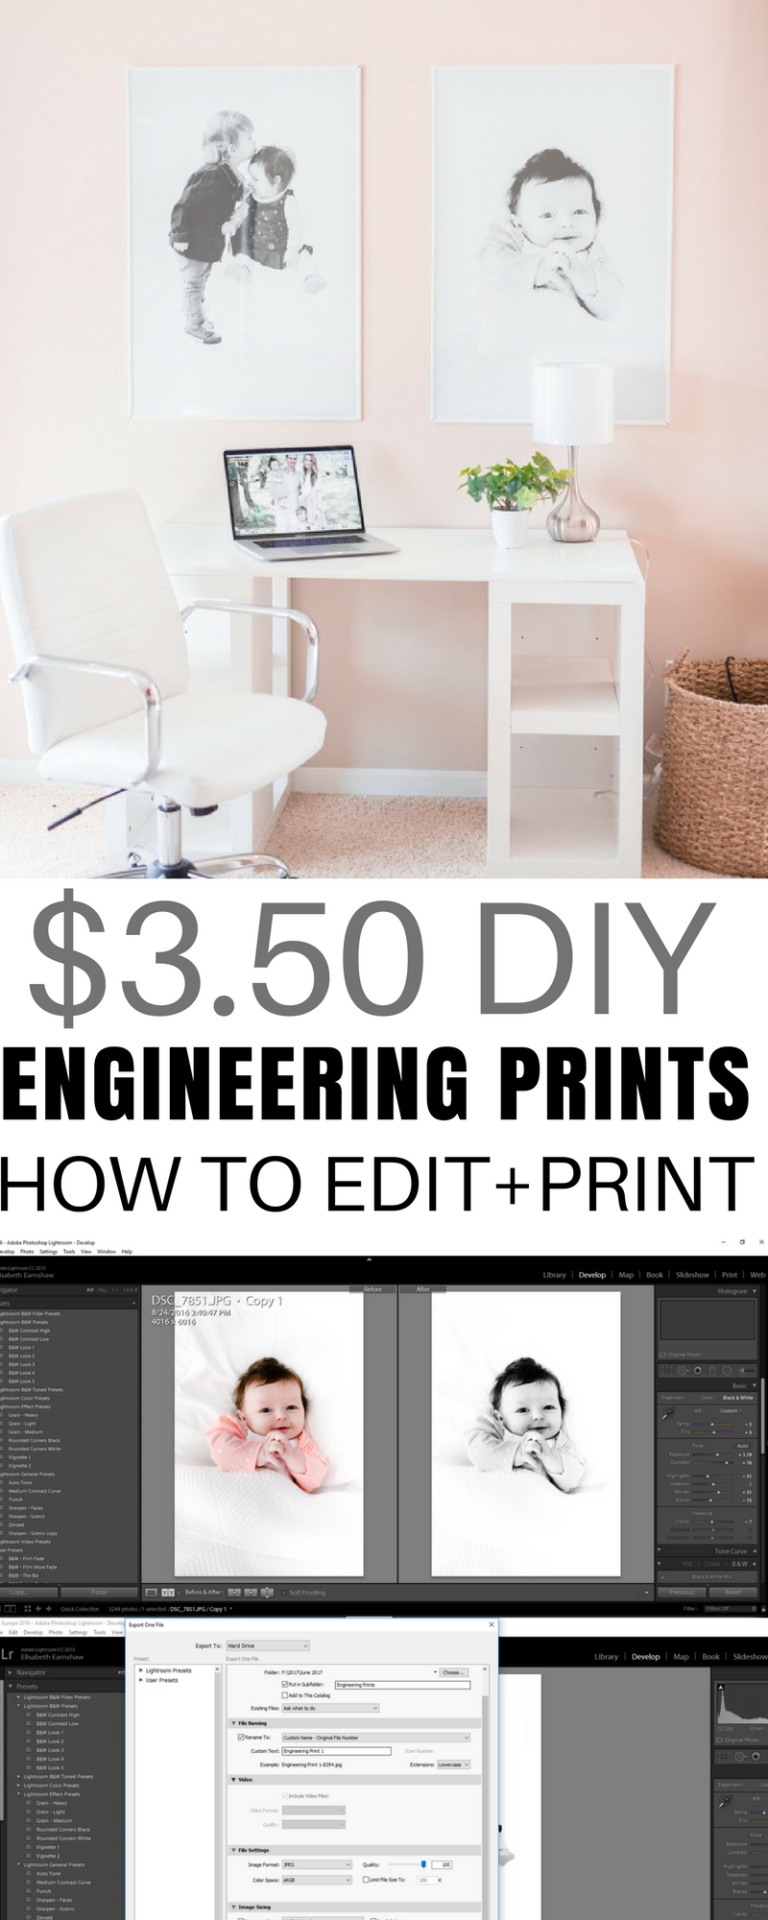 14 Engineering Prints For Your Walls Frame Included Engineer Prints Kid Room Decor Easy Home Decor